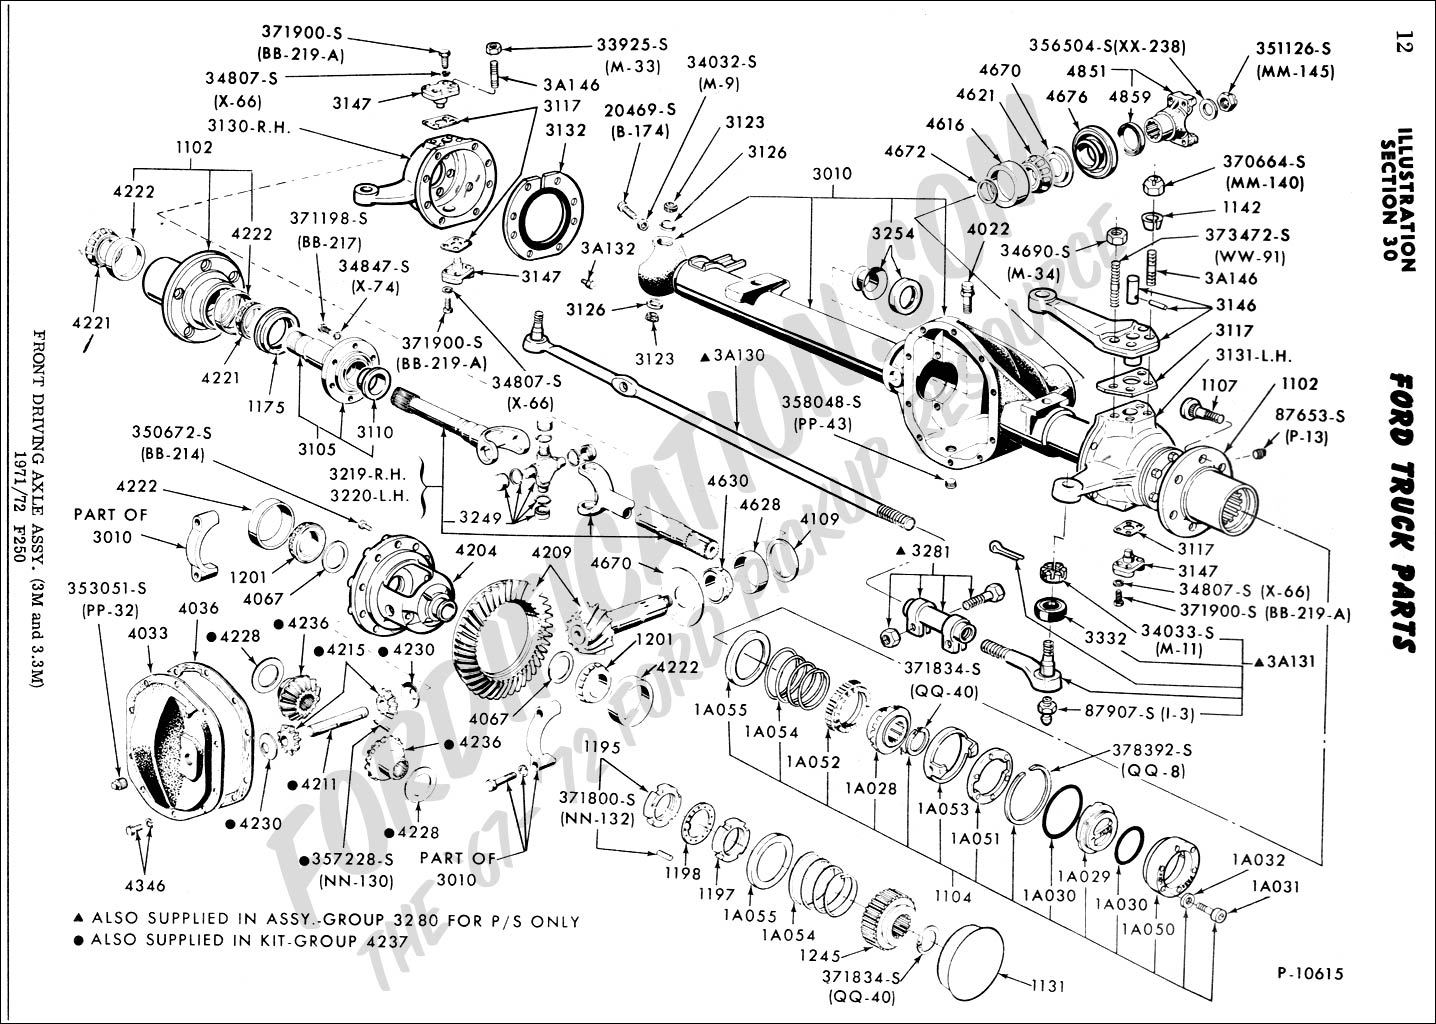 1977 ford f150 wiring diagram get free image about wiring diagram